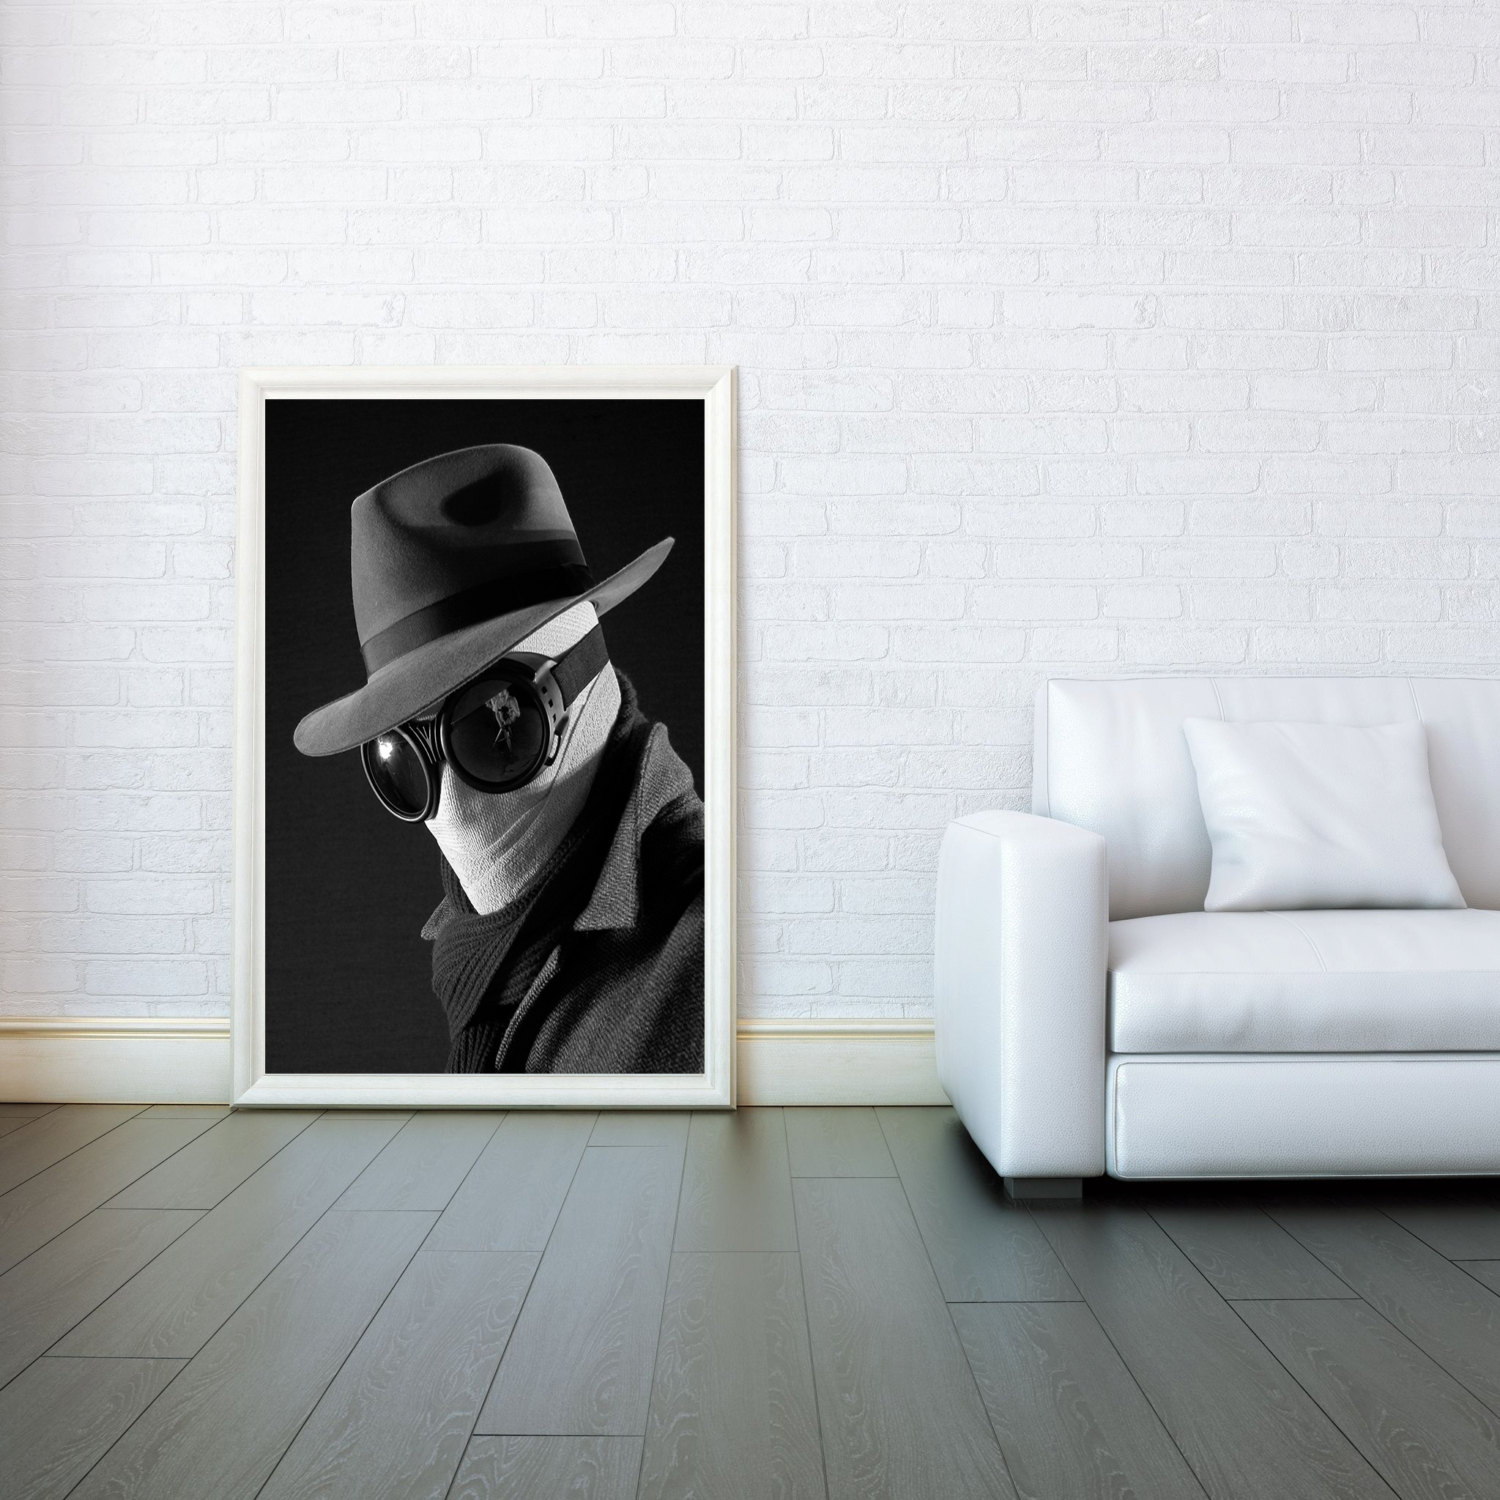 Invisible man movie art prints posters wall art print poster any size black and white poster